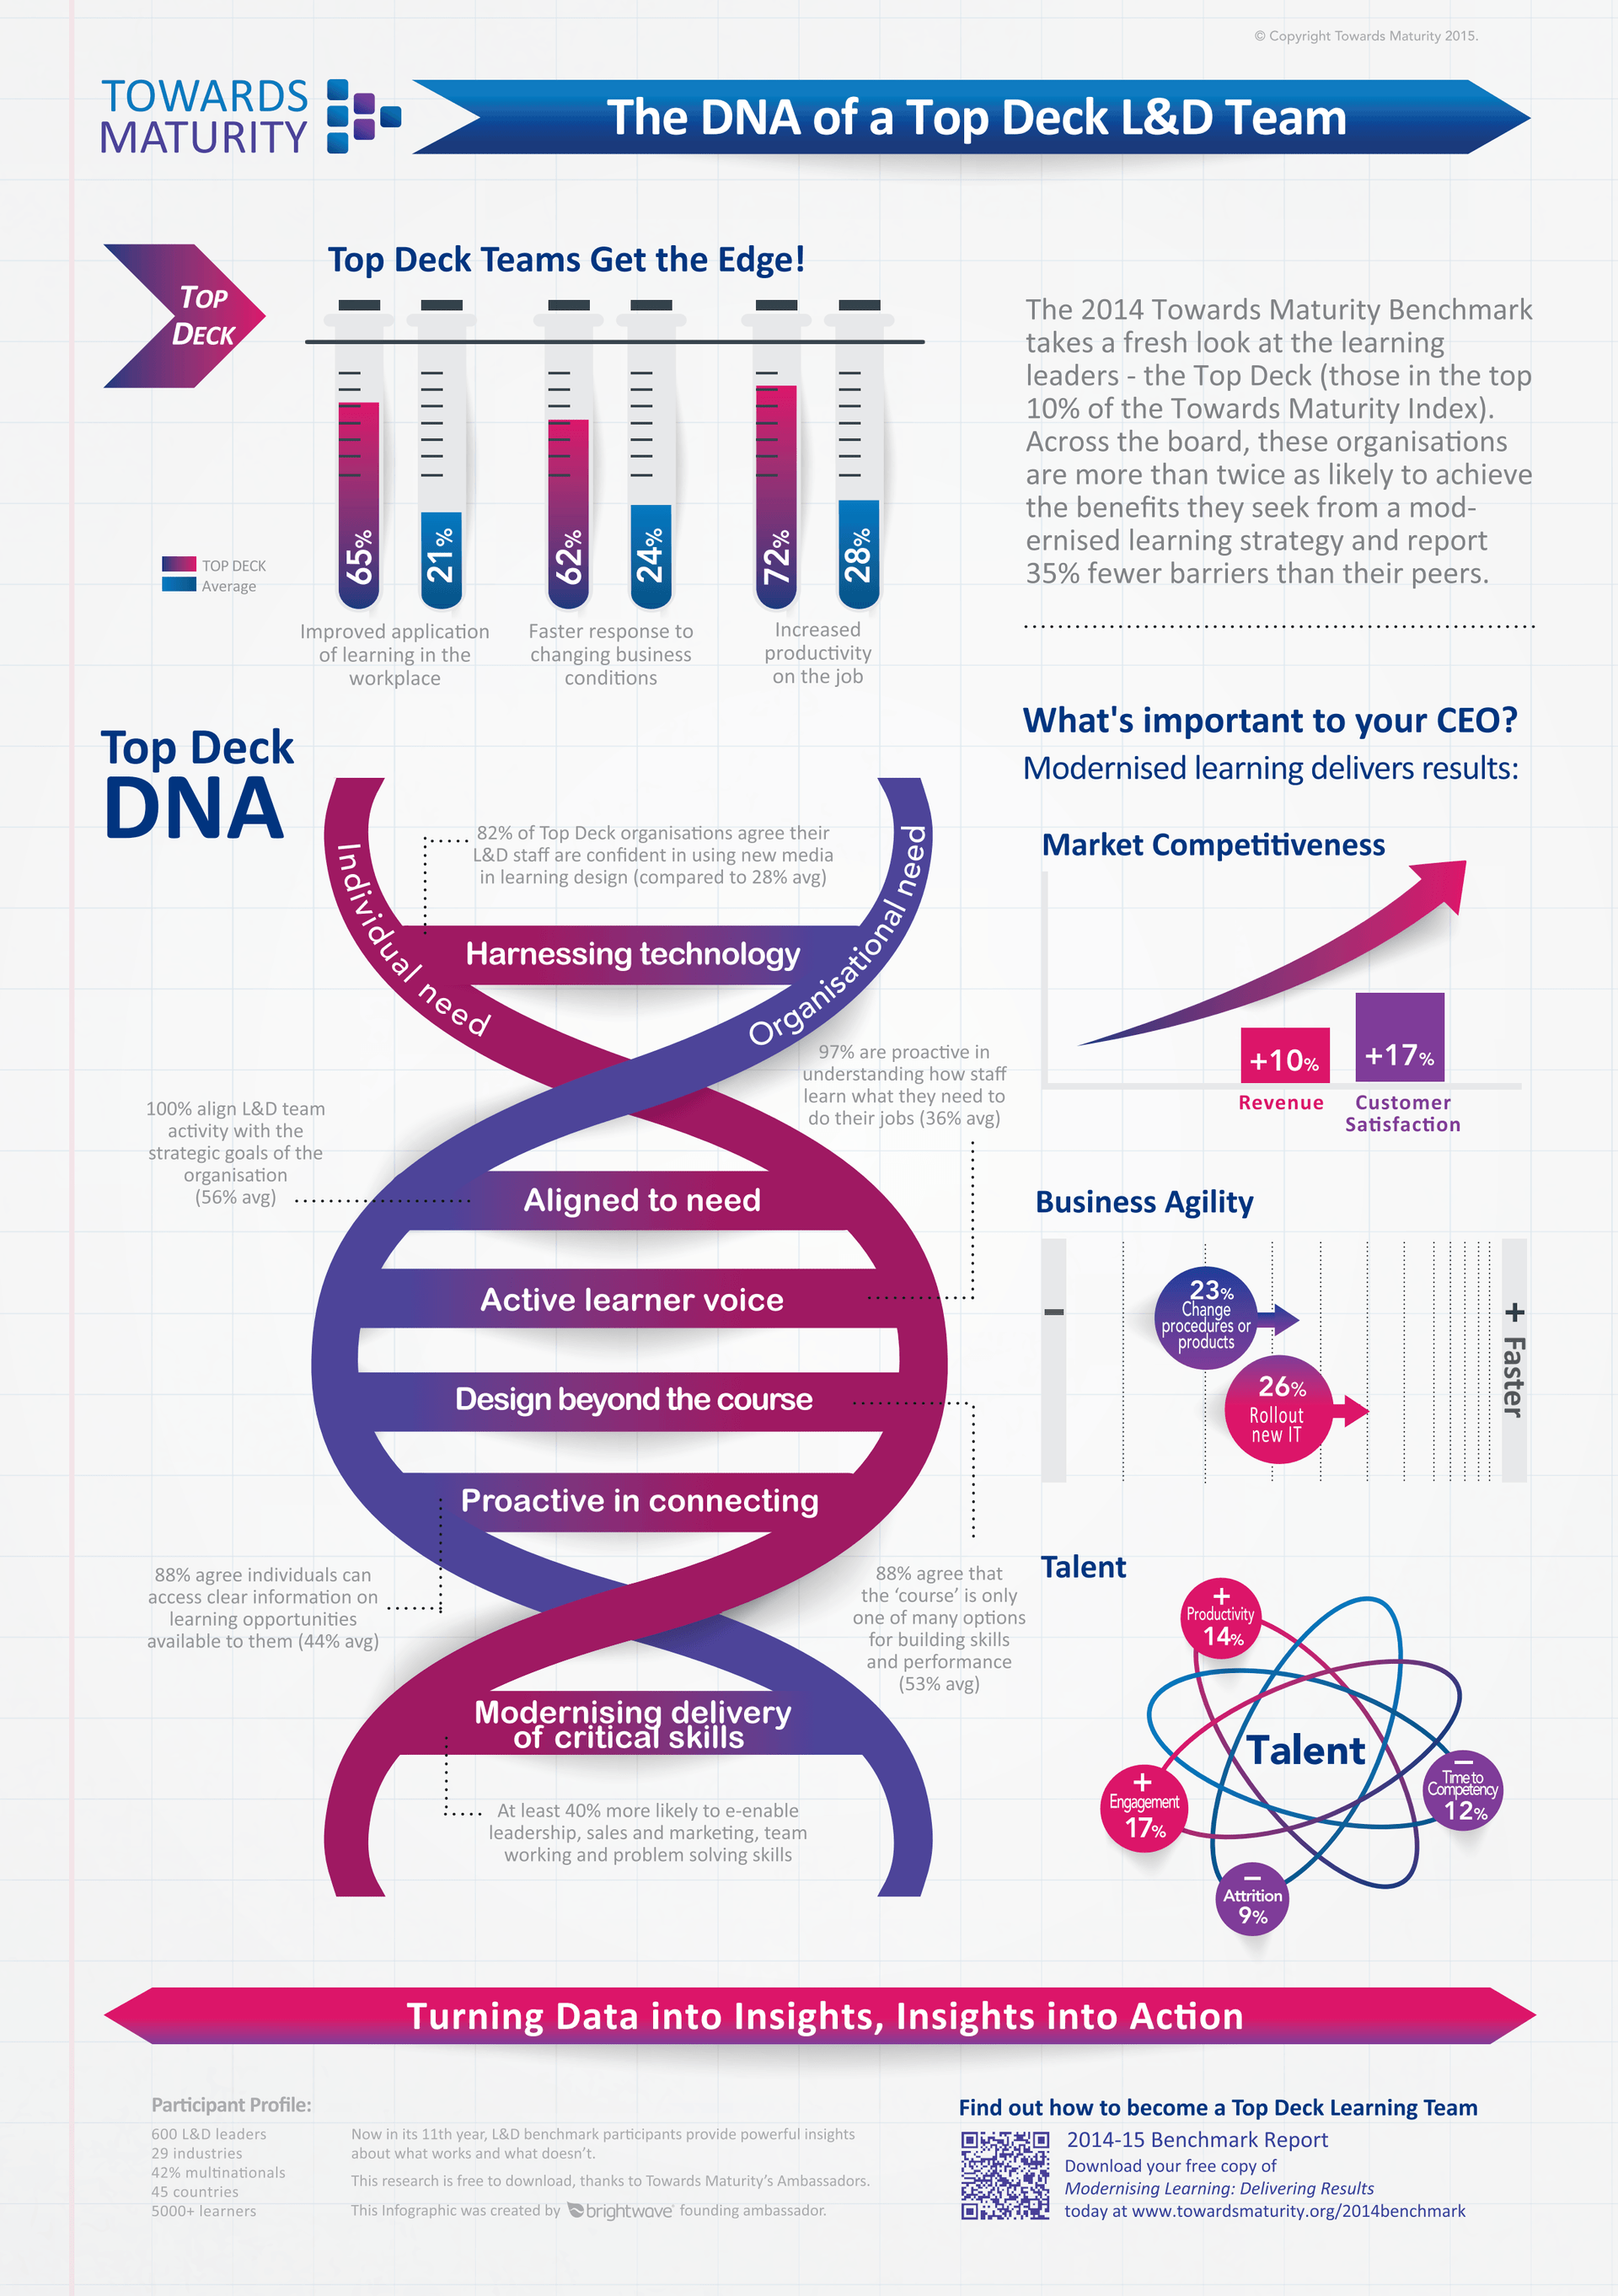 The DNA of a Top Deck L&D Team Infographic